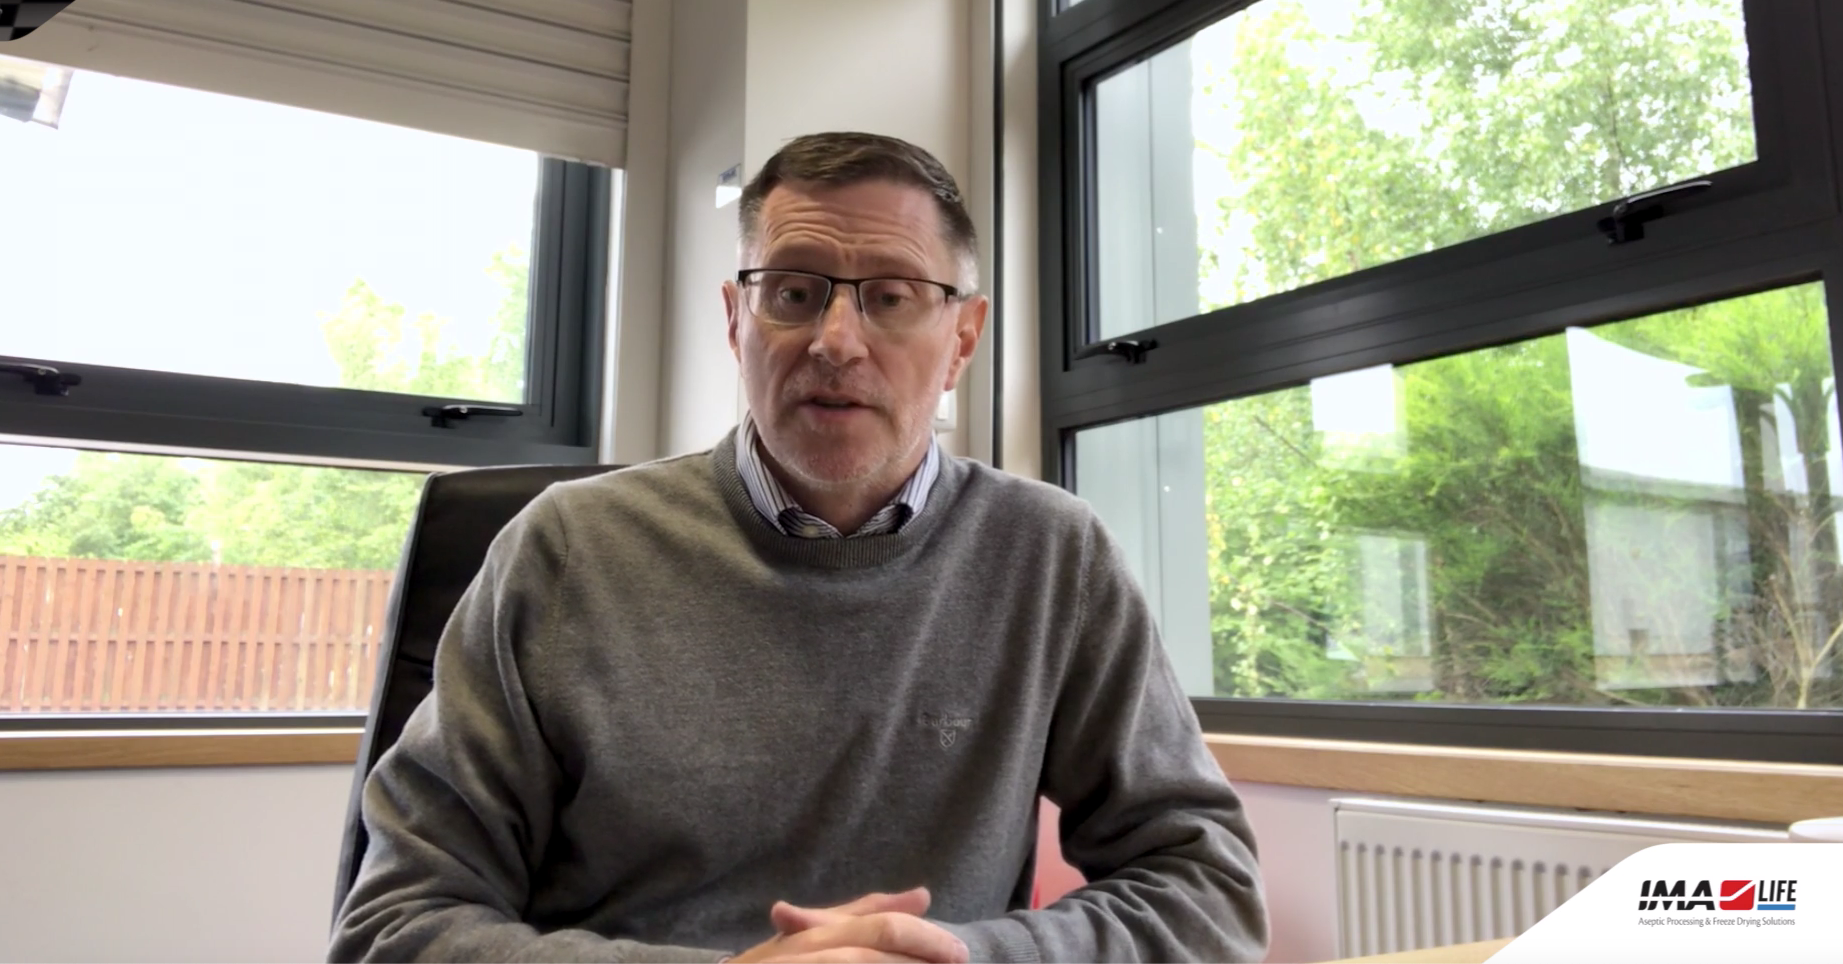 Watch the video-interview with Phil Templeton